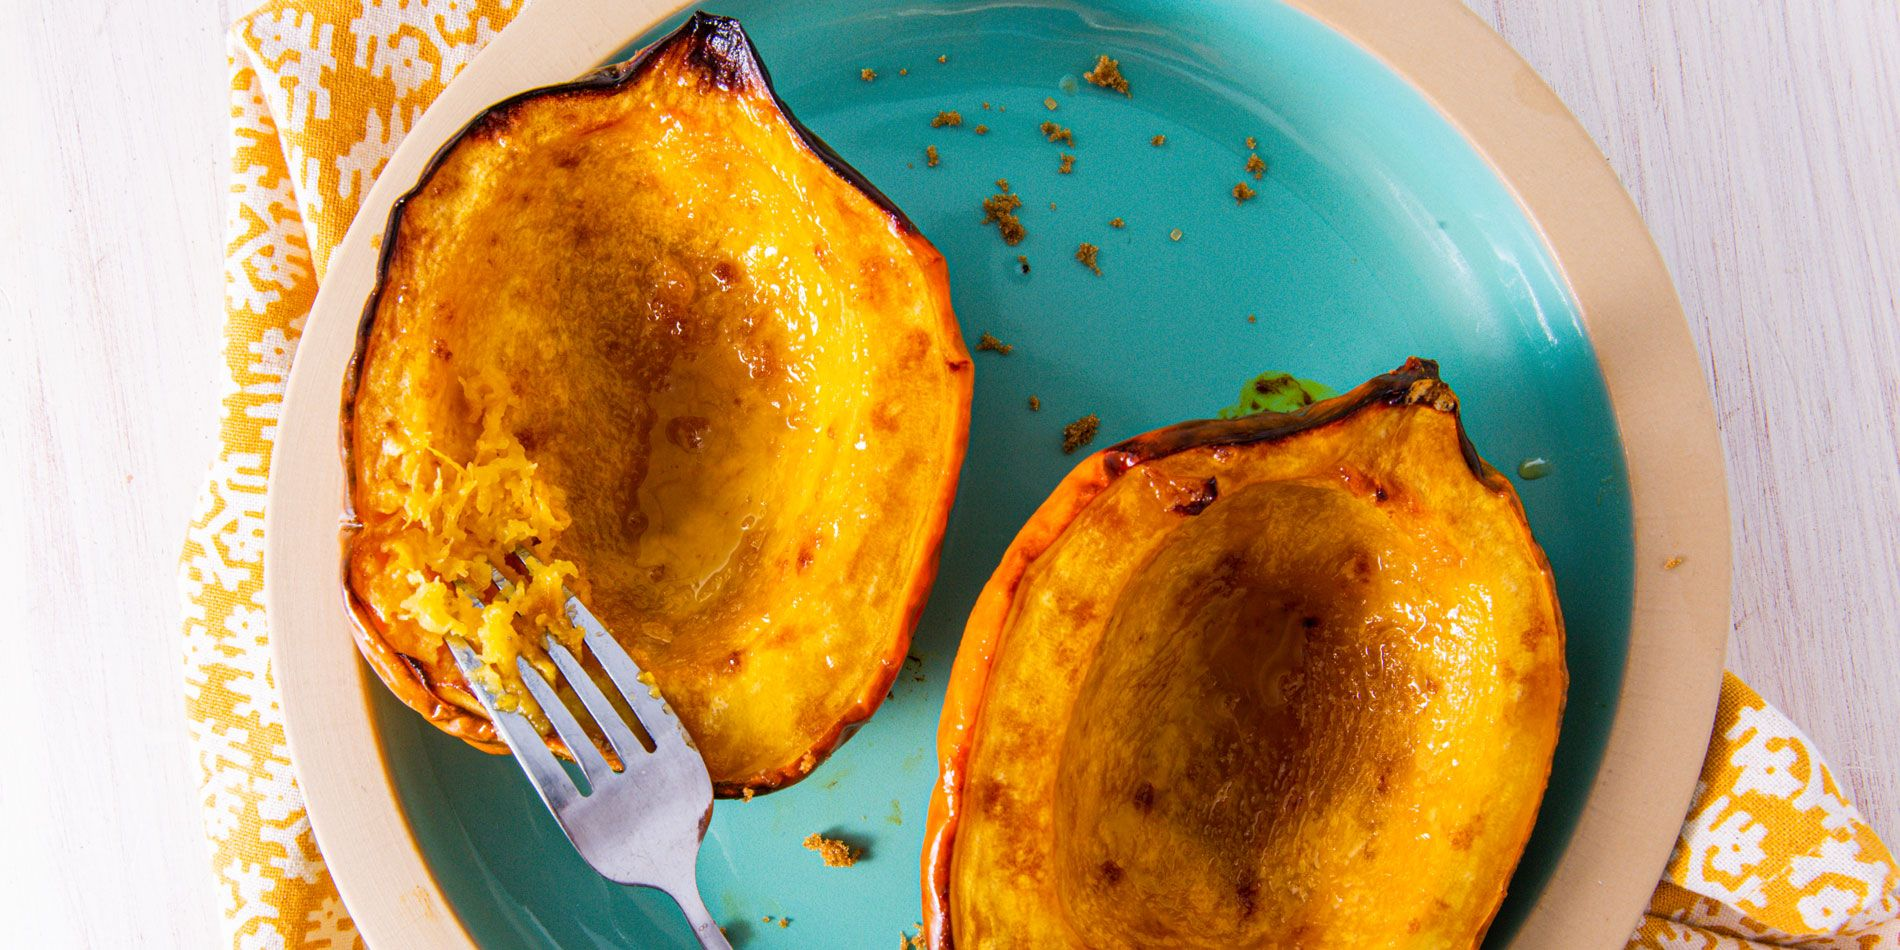 Acorn Squash Makes The Most Delicious Fall Treat